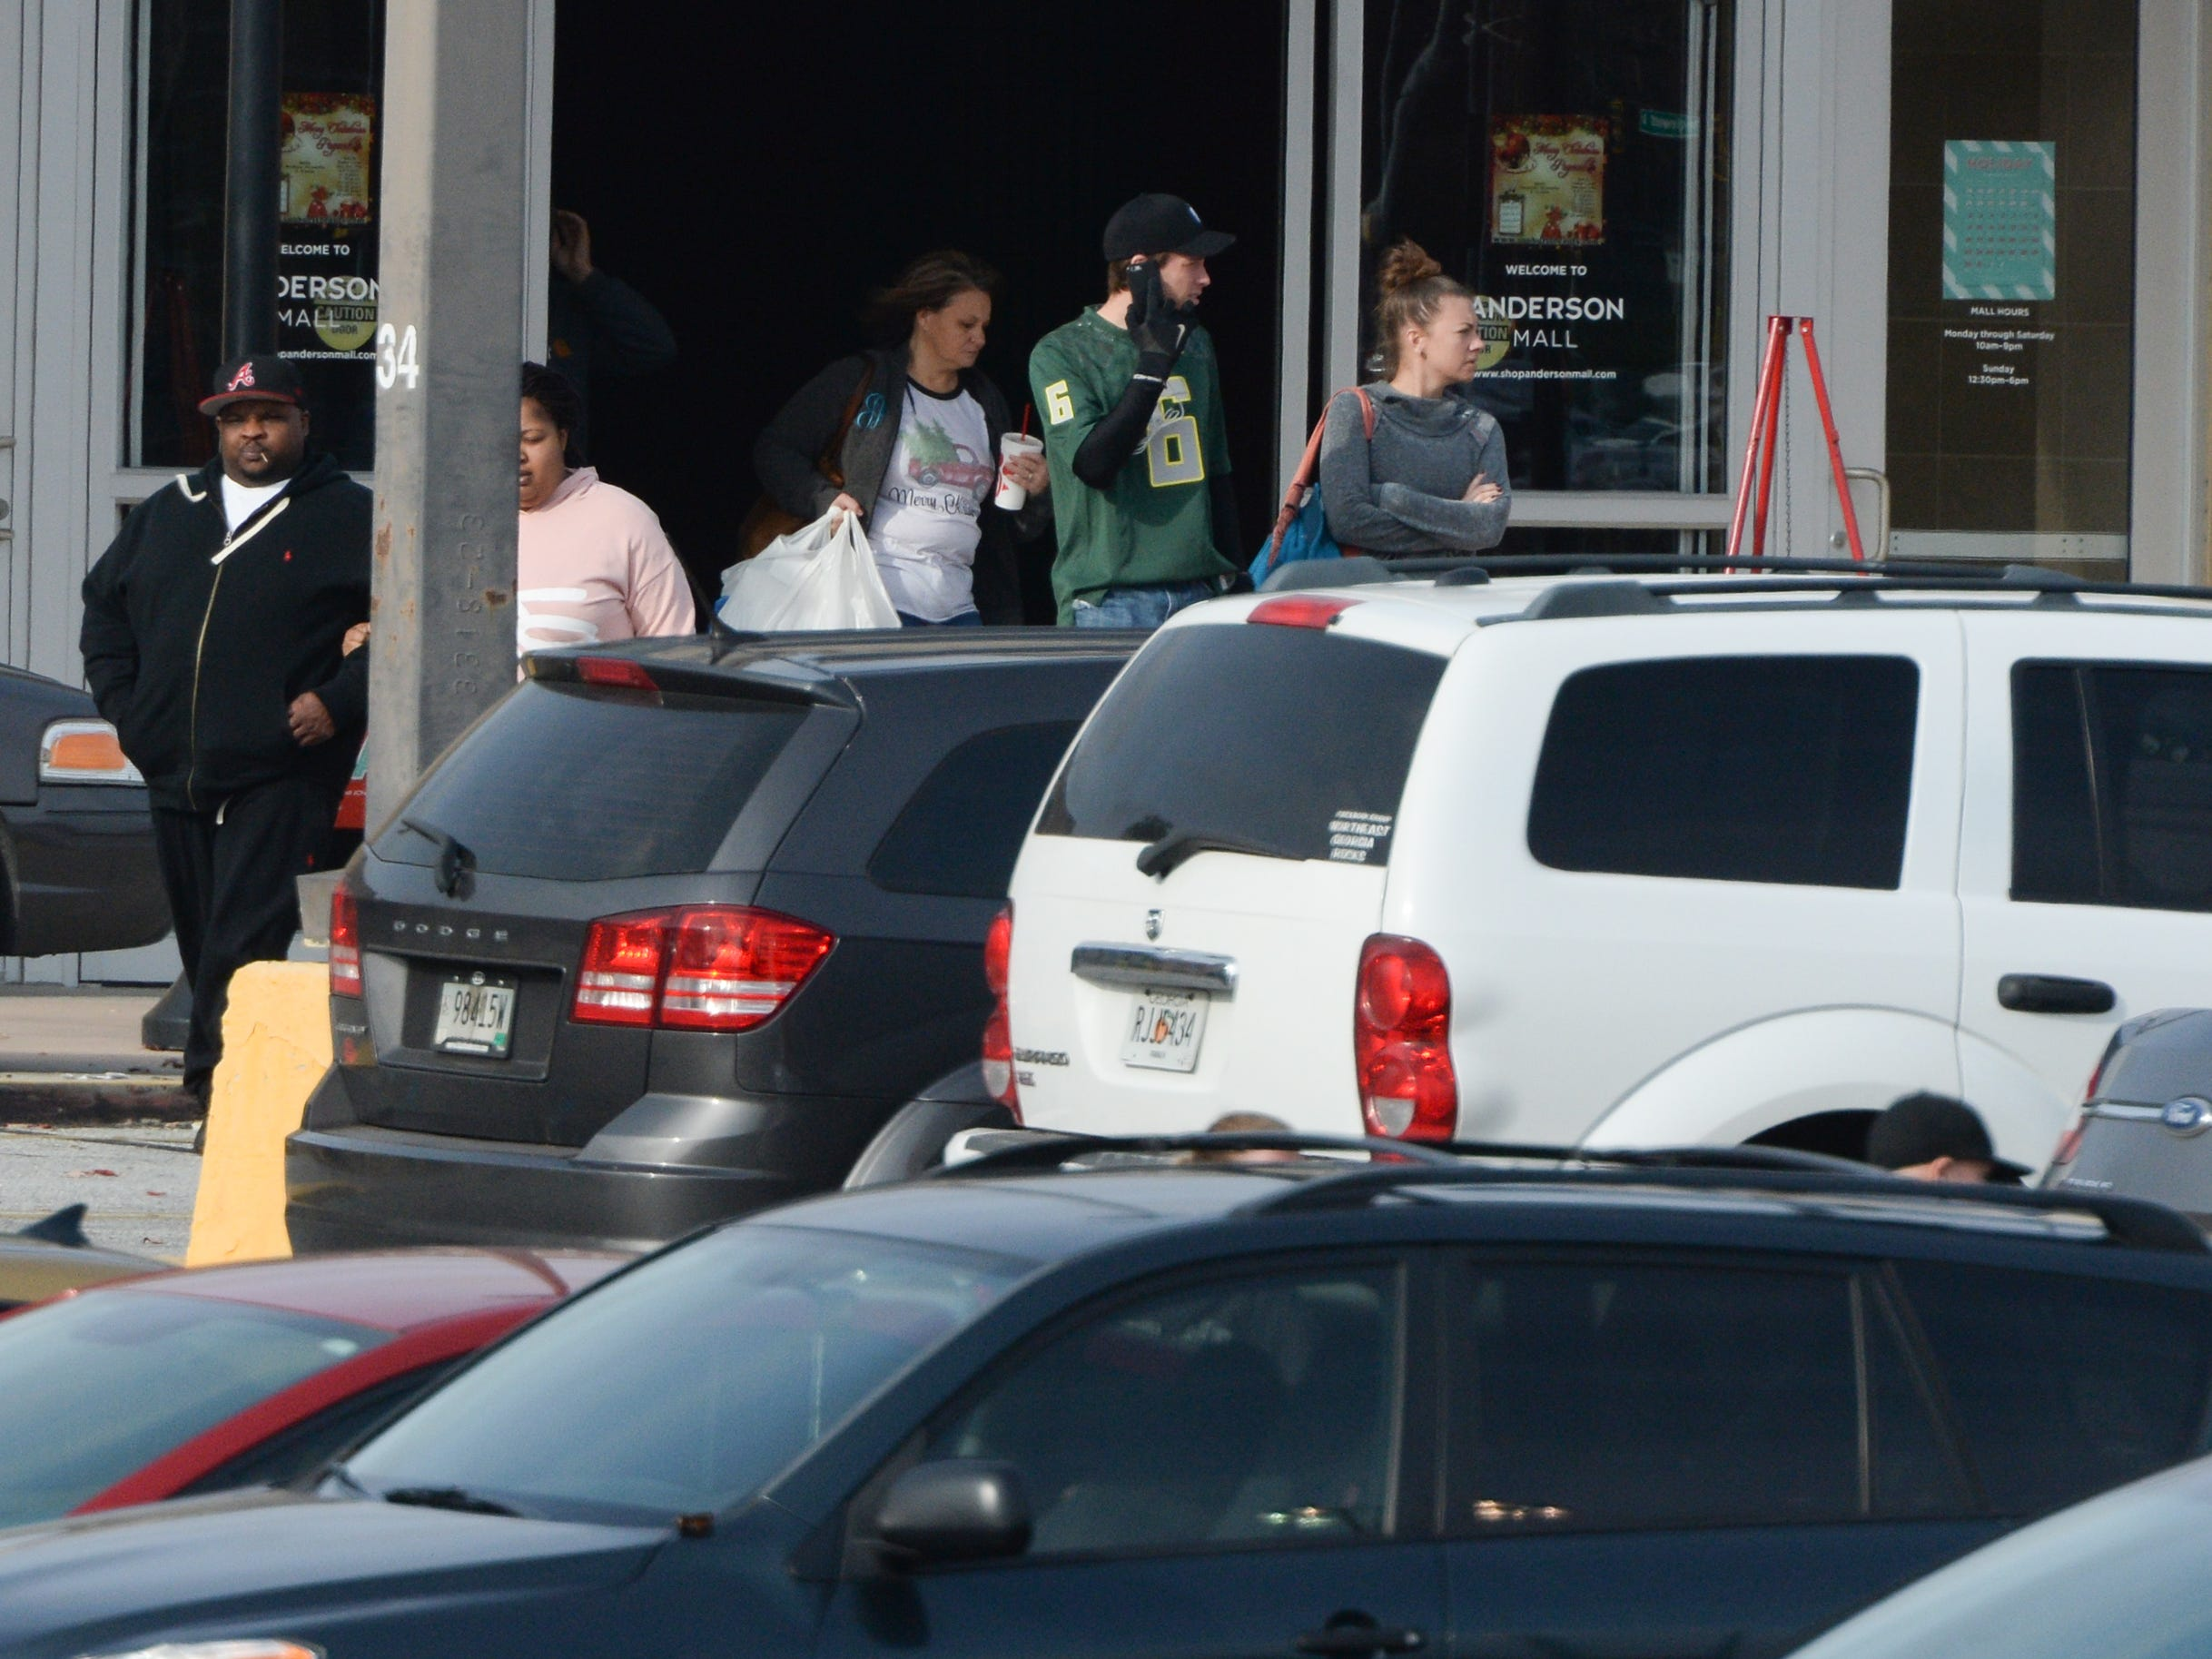 Customers go in and out of the Anderson Mall during Black Friday shopping on Friday, November 23, 2018.